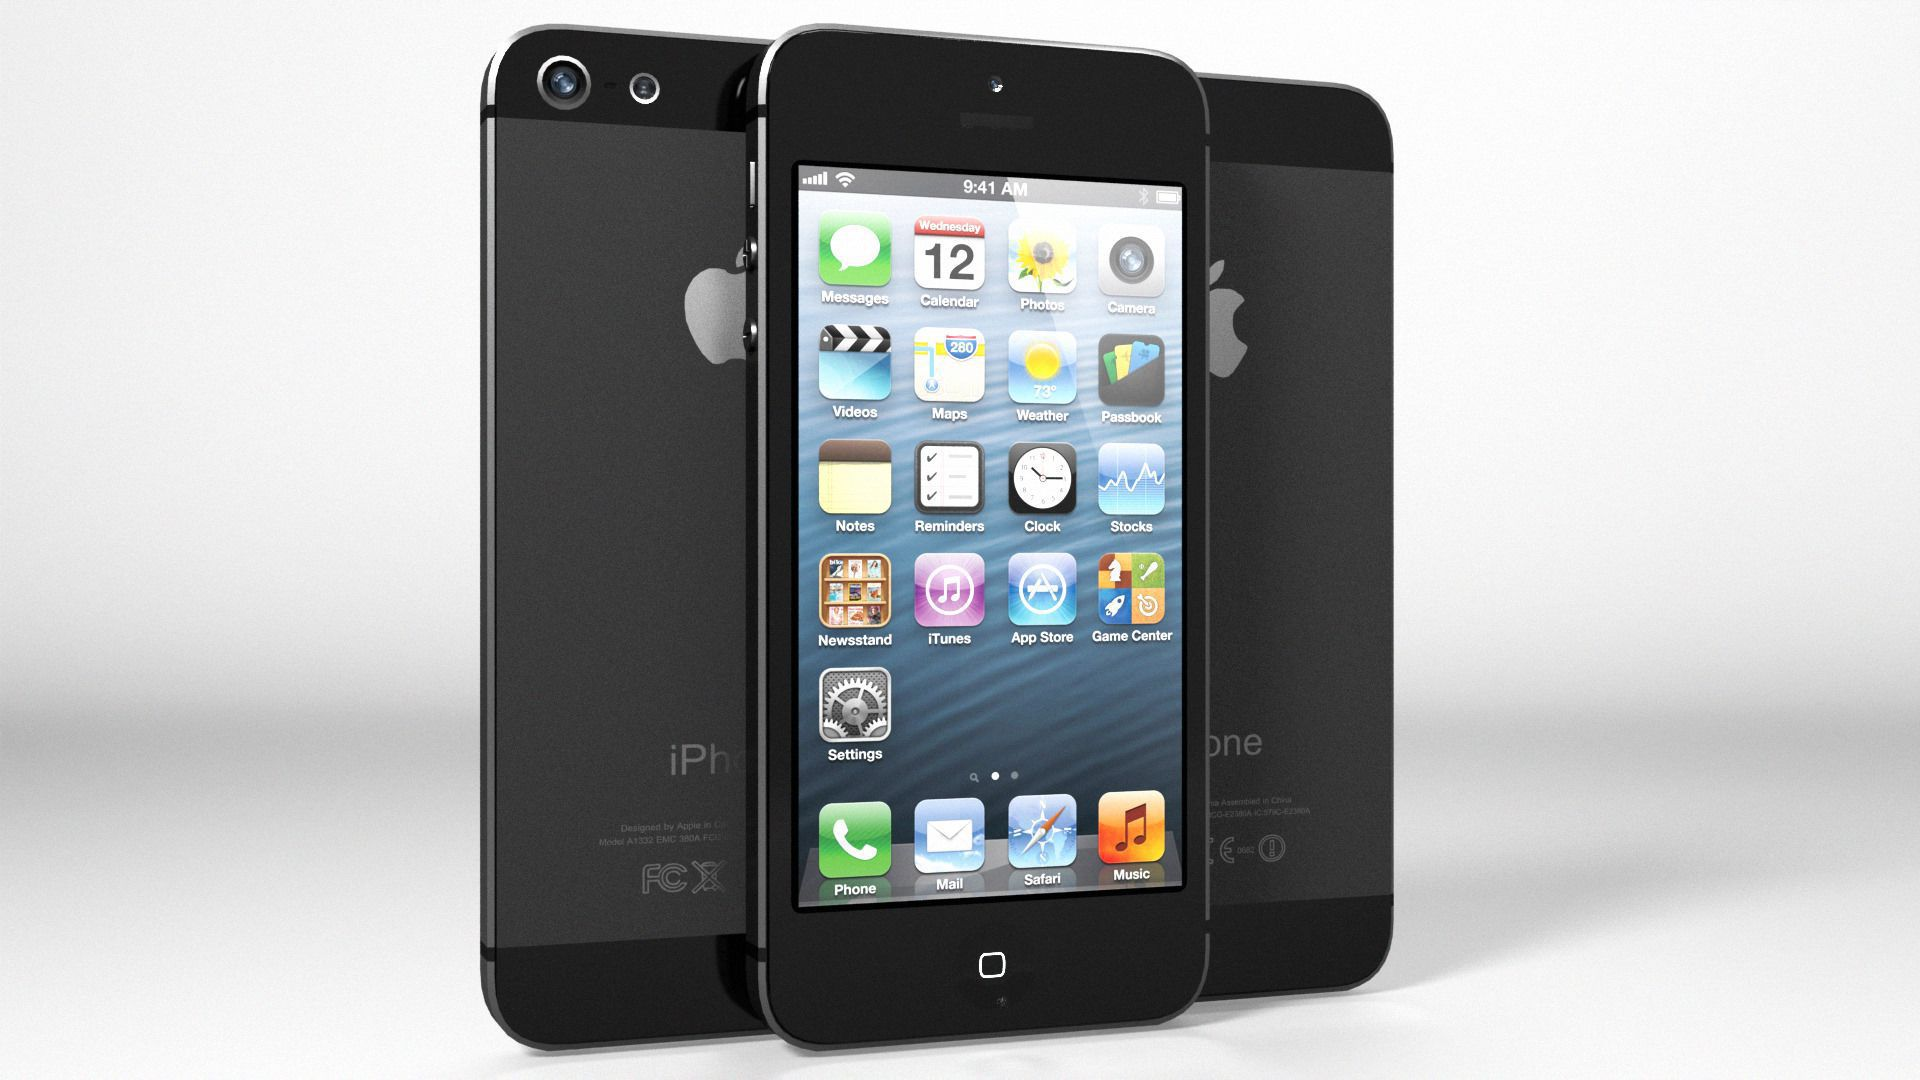 Apple Iphone 5 Pictures